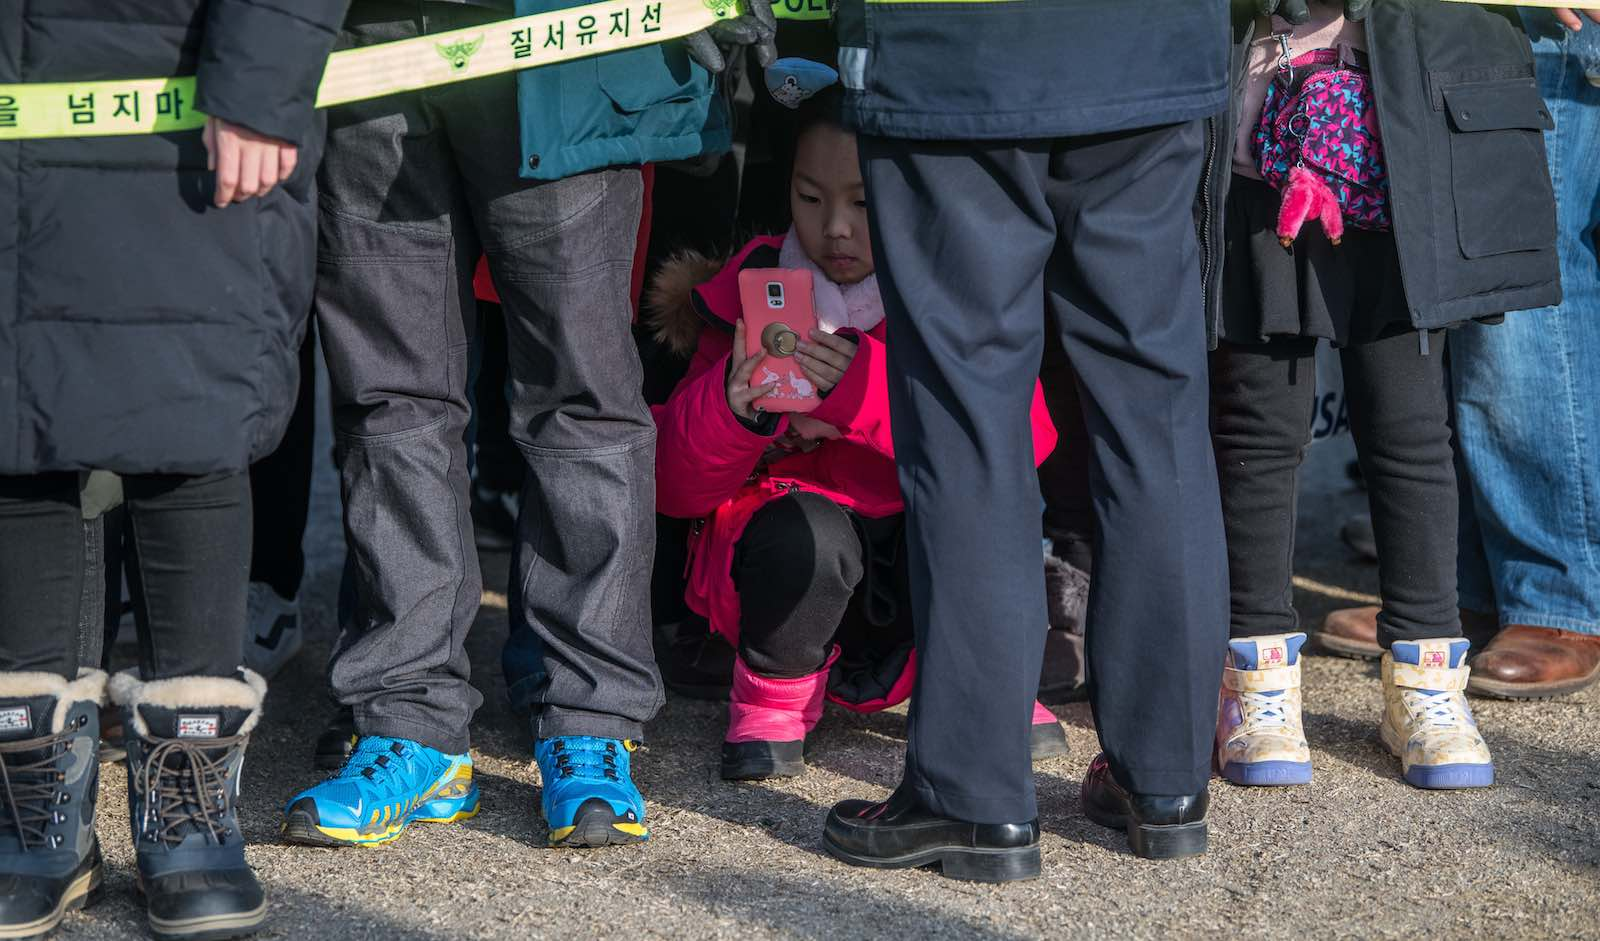 A girl crouches for a photograph during South Korea's PyeongChang Winter Olympics in February (Photo: Carl Court/Getty)